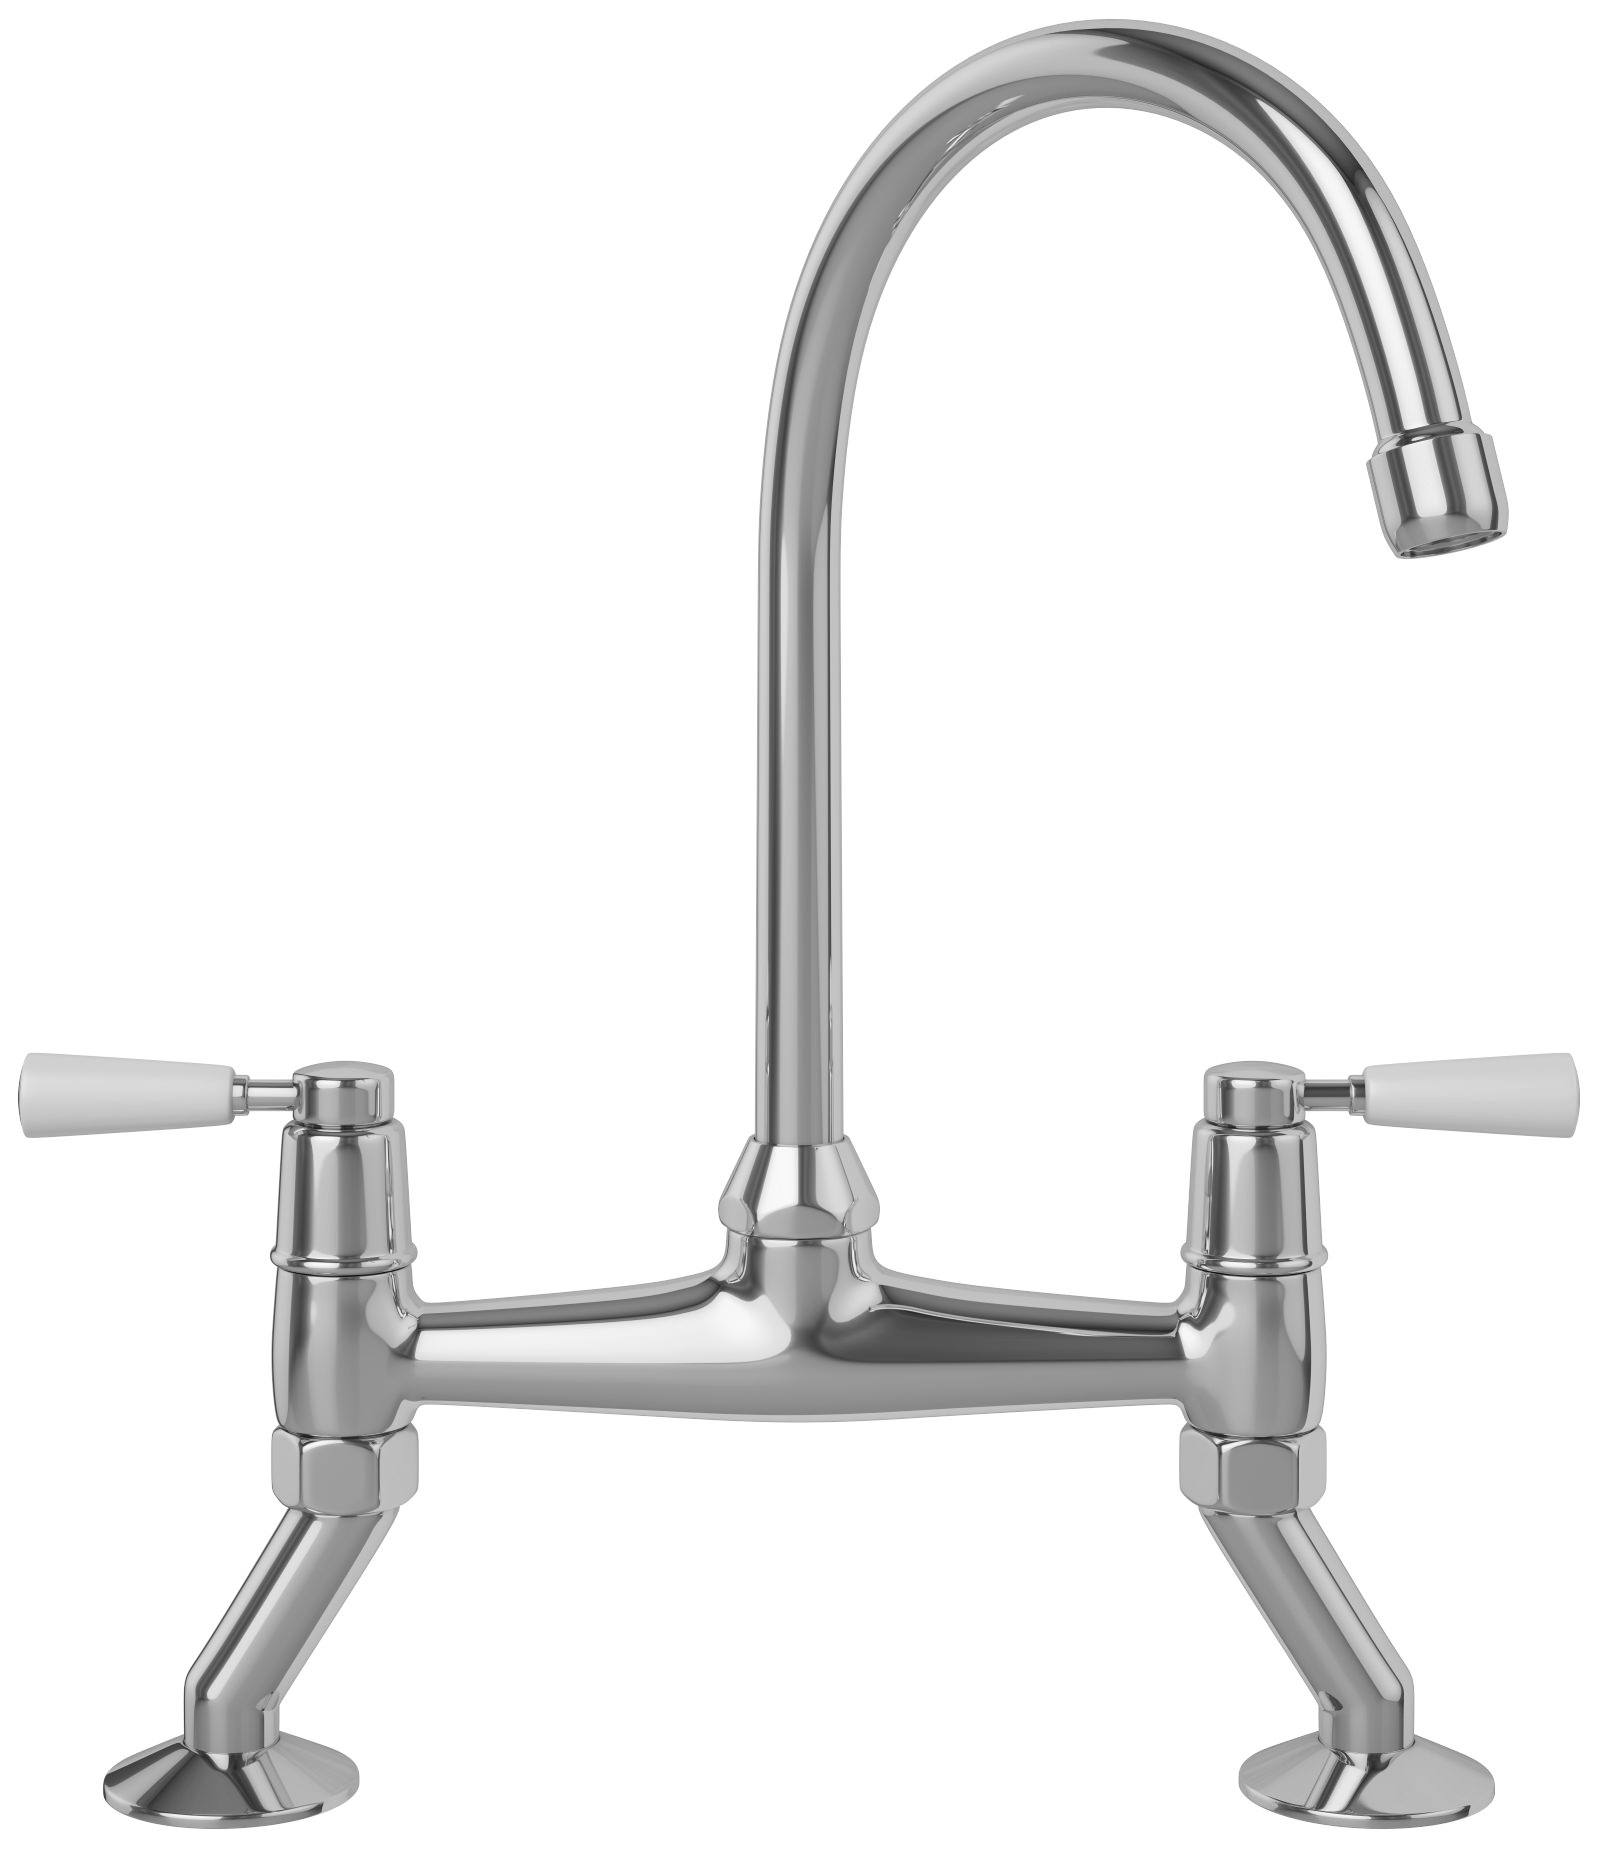 franke bridge lever kitchen sink mixer tap chrome - more finish